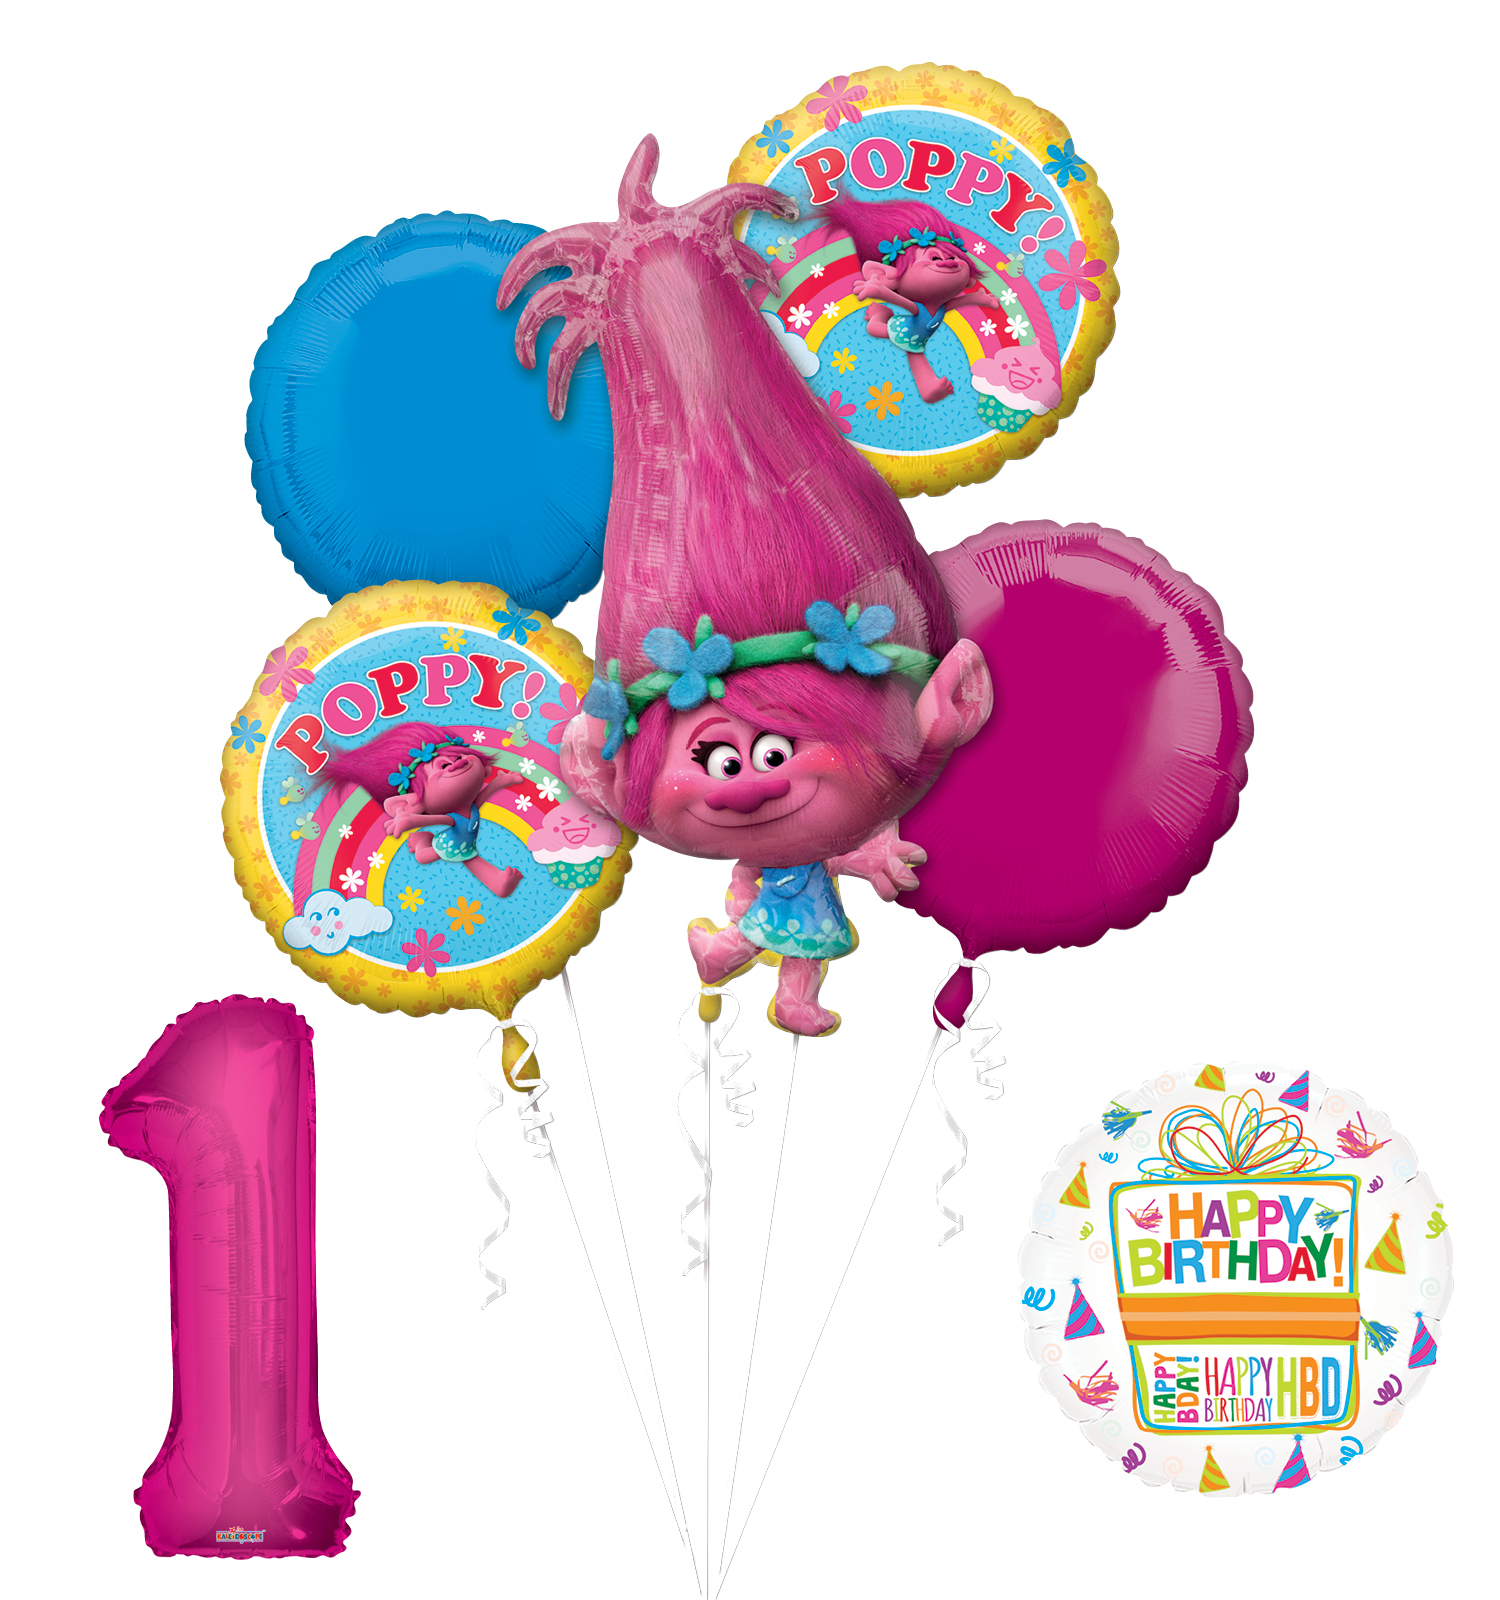 NEW TROLLS POPPY 1st Birthday Party Supplies And Balloon Bouquet Decorations